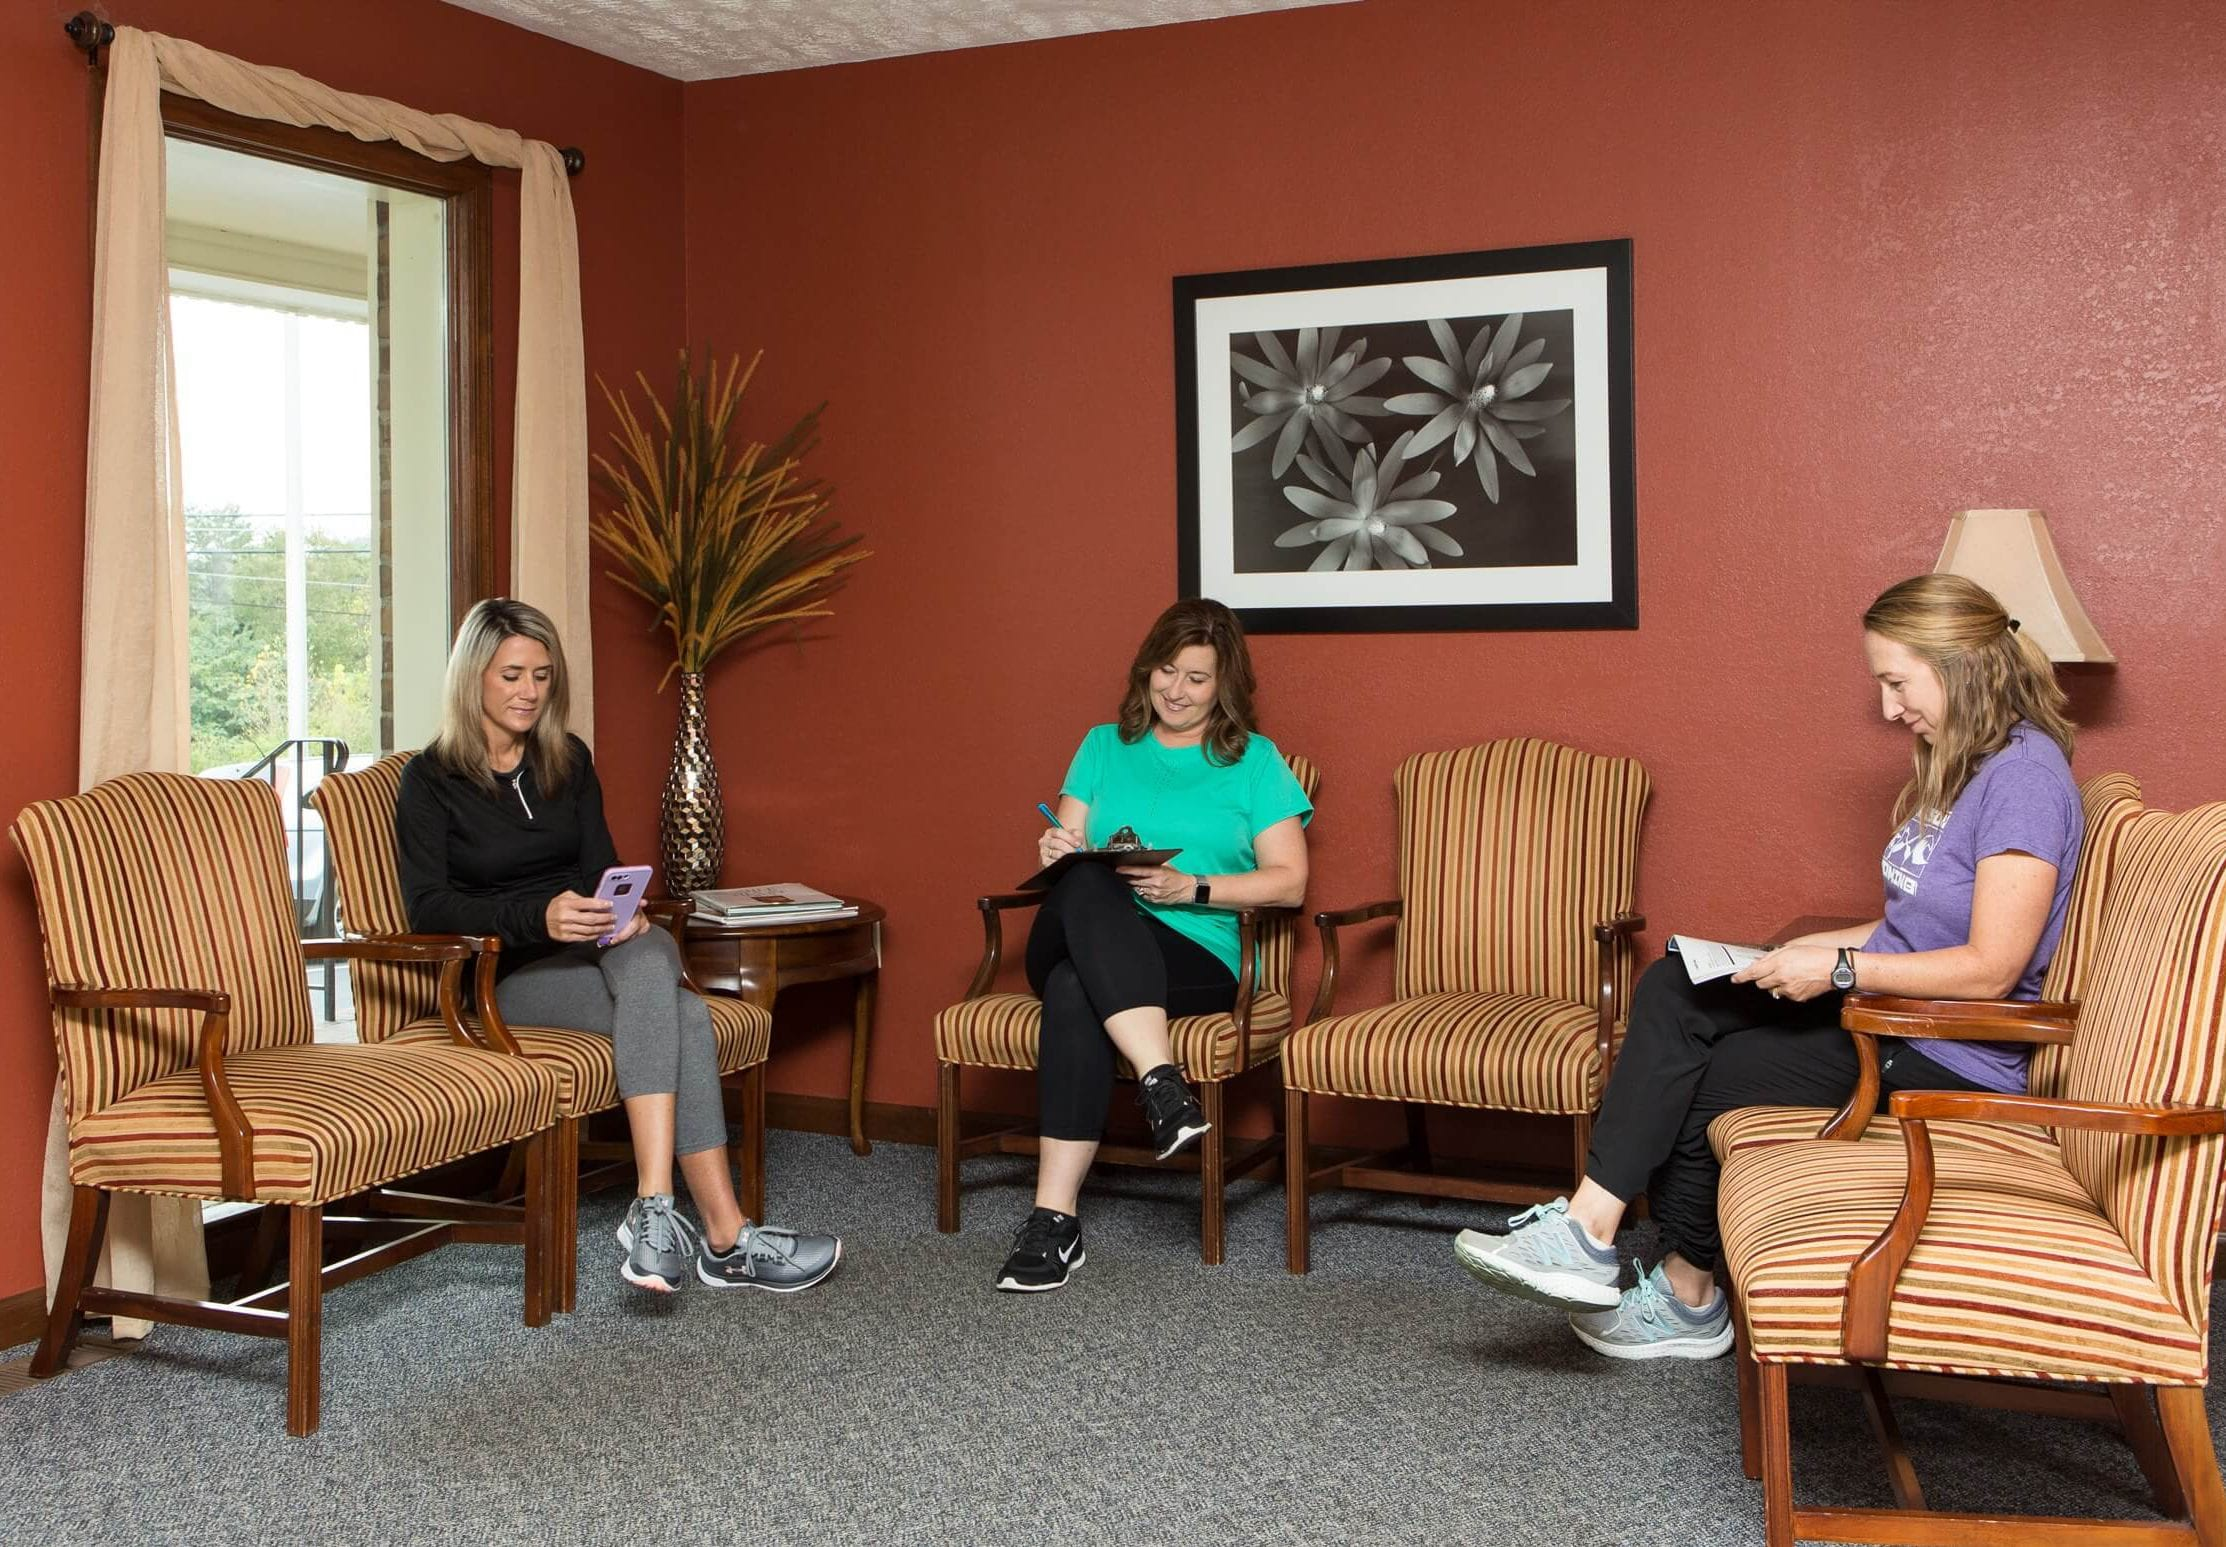 Birdwell and Guffey | South Knoxville Family Dentistry